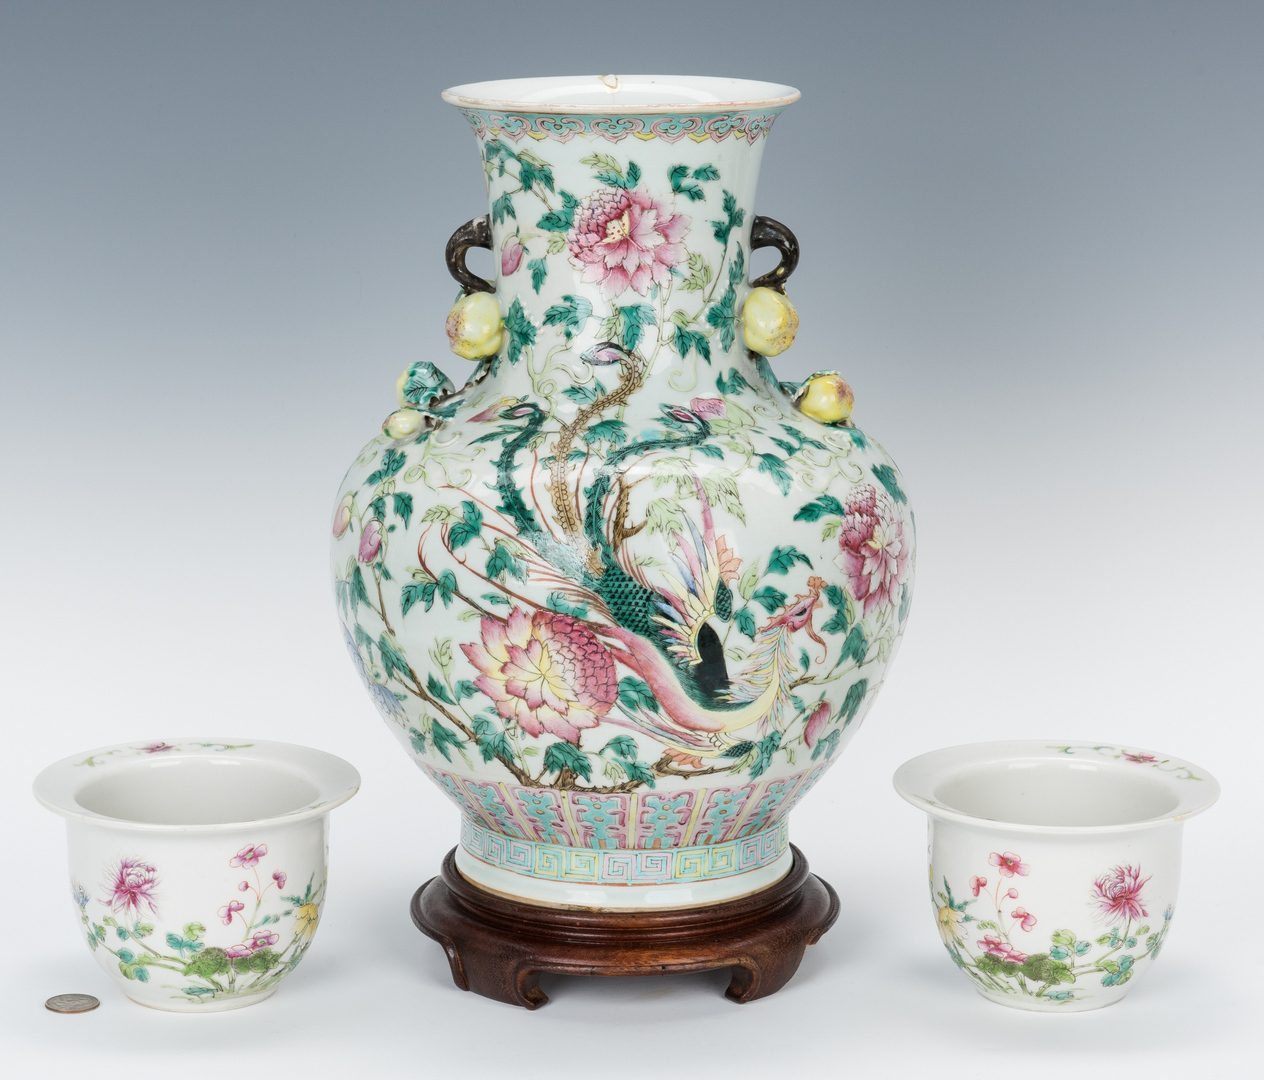 Lot 463: Chinese Famille Rose Vase with Small Cache Pots